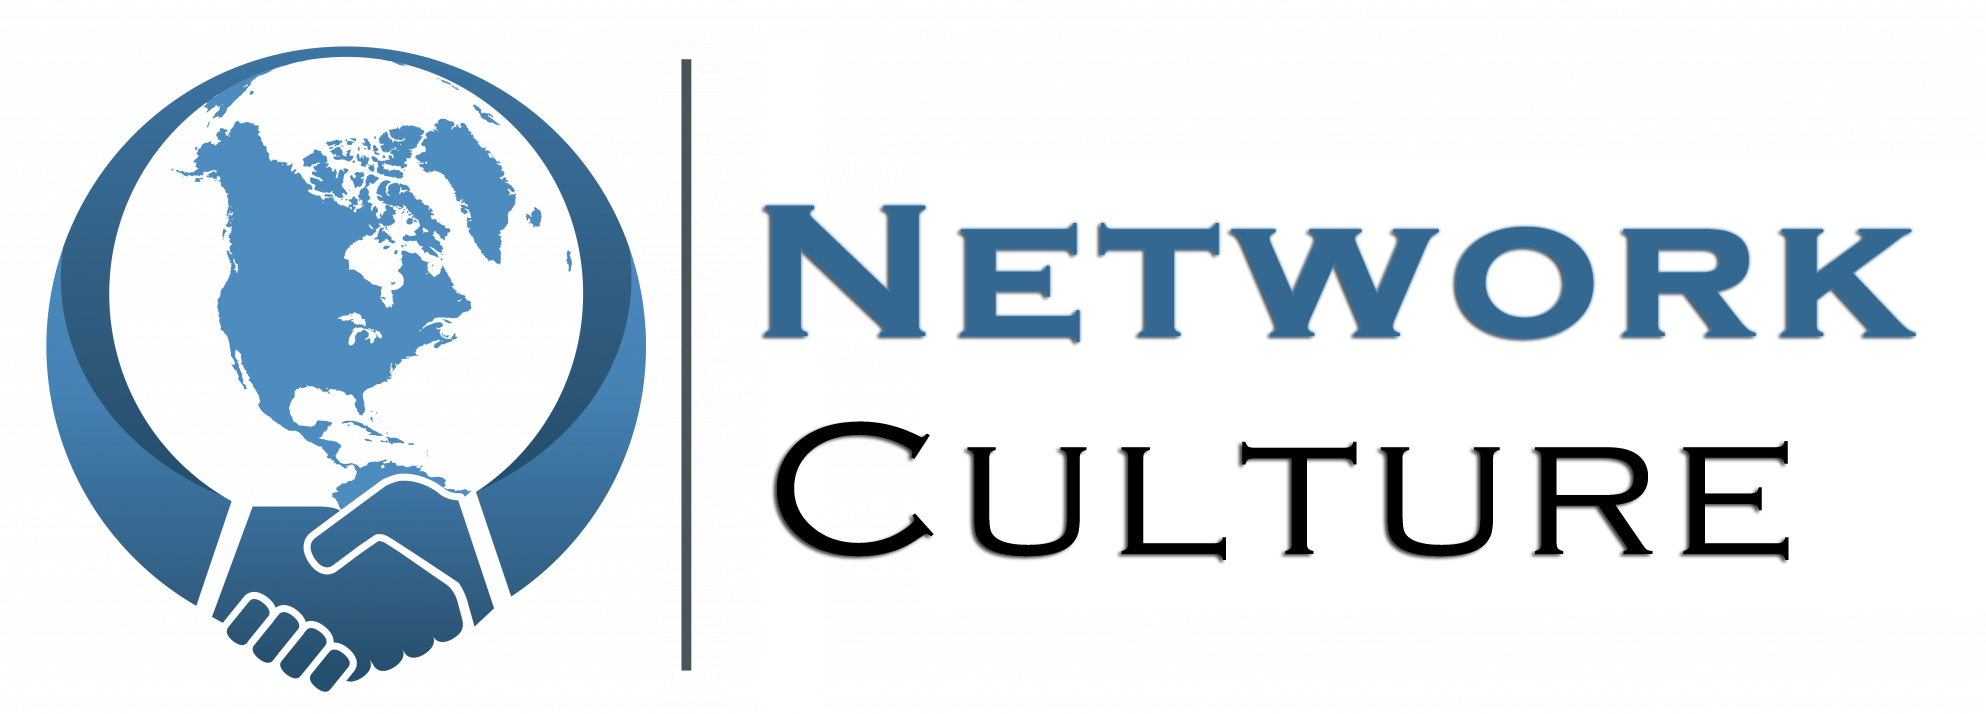 NETWORK CULTURE FULL BUSINESS PLAN